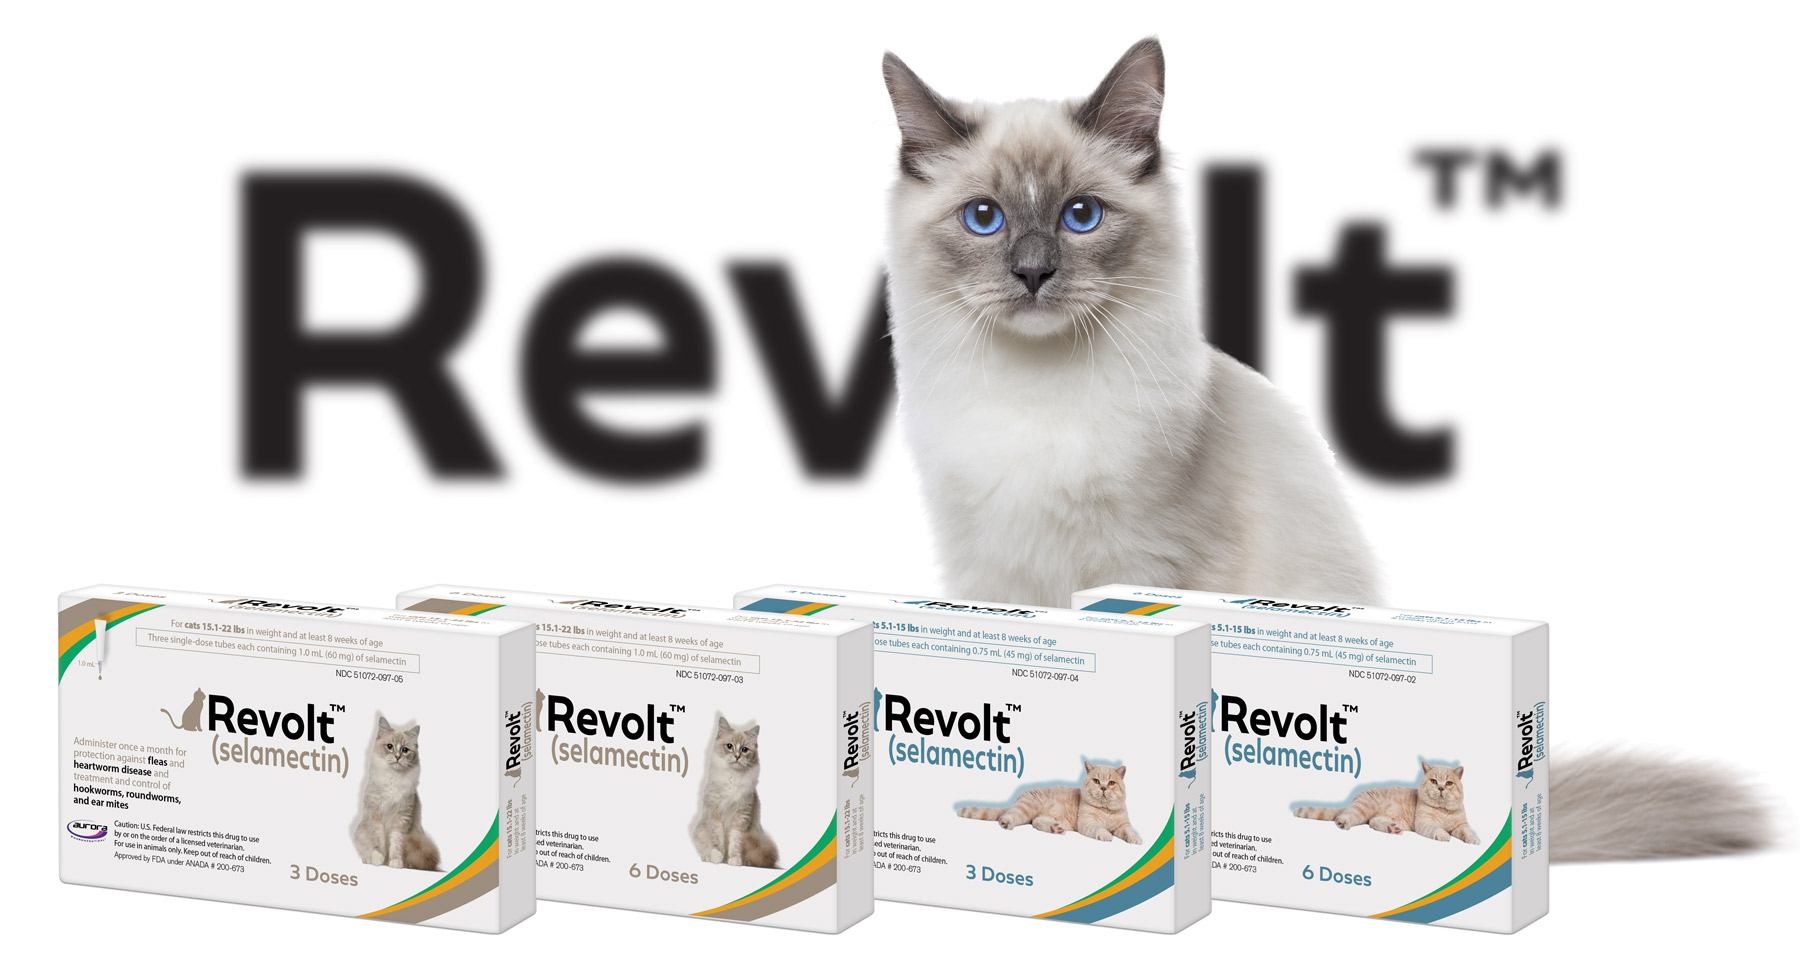 revolt topical monthly all-in-one for cats